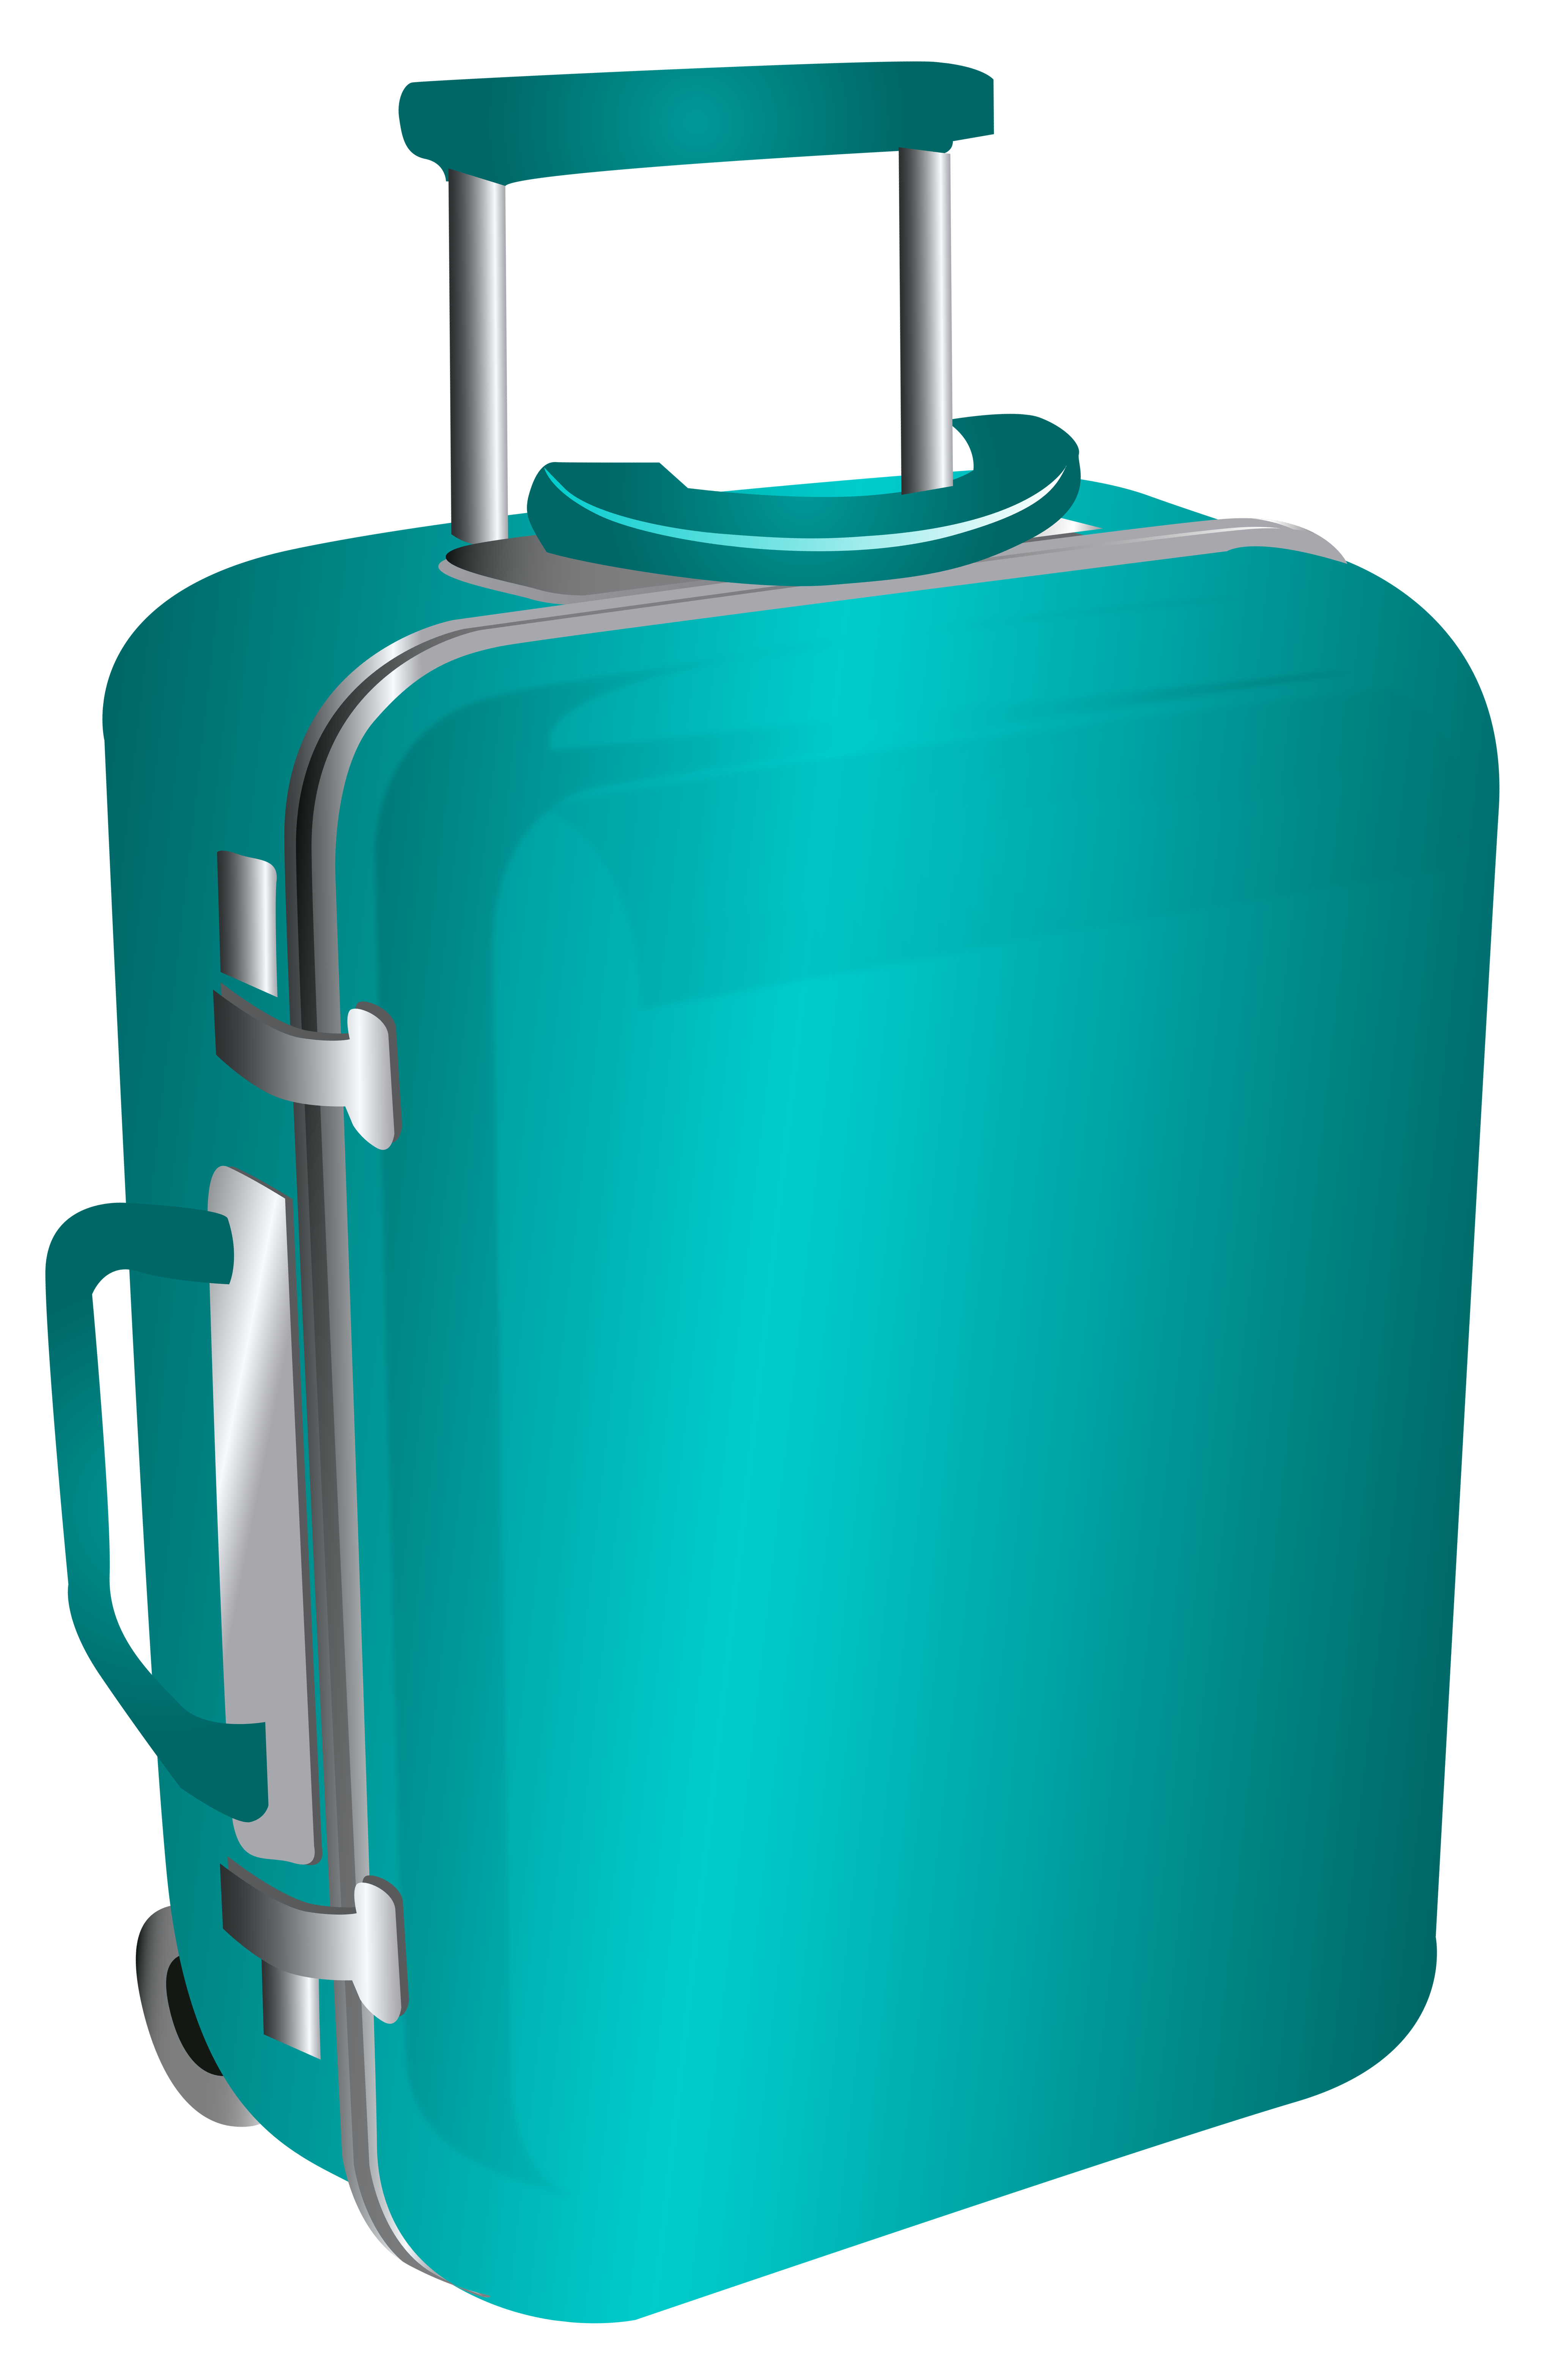 Blue Trolley Travel Bag PNG Clipart Image.